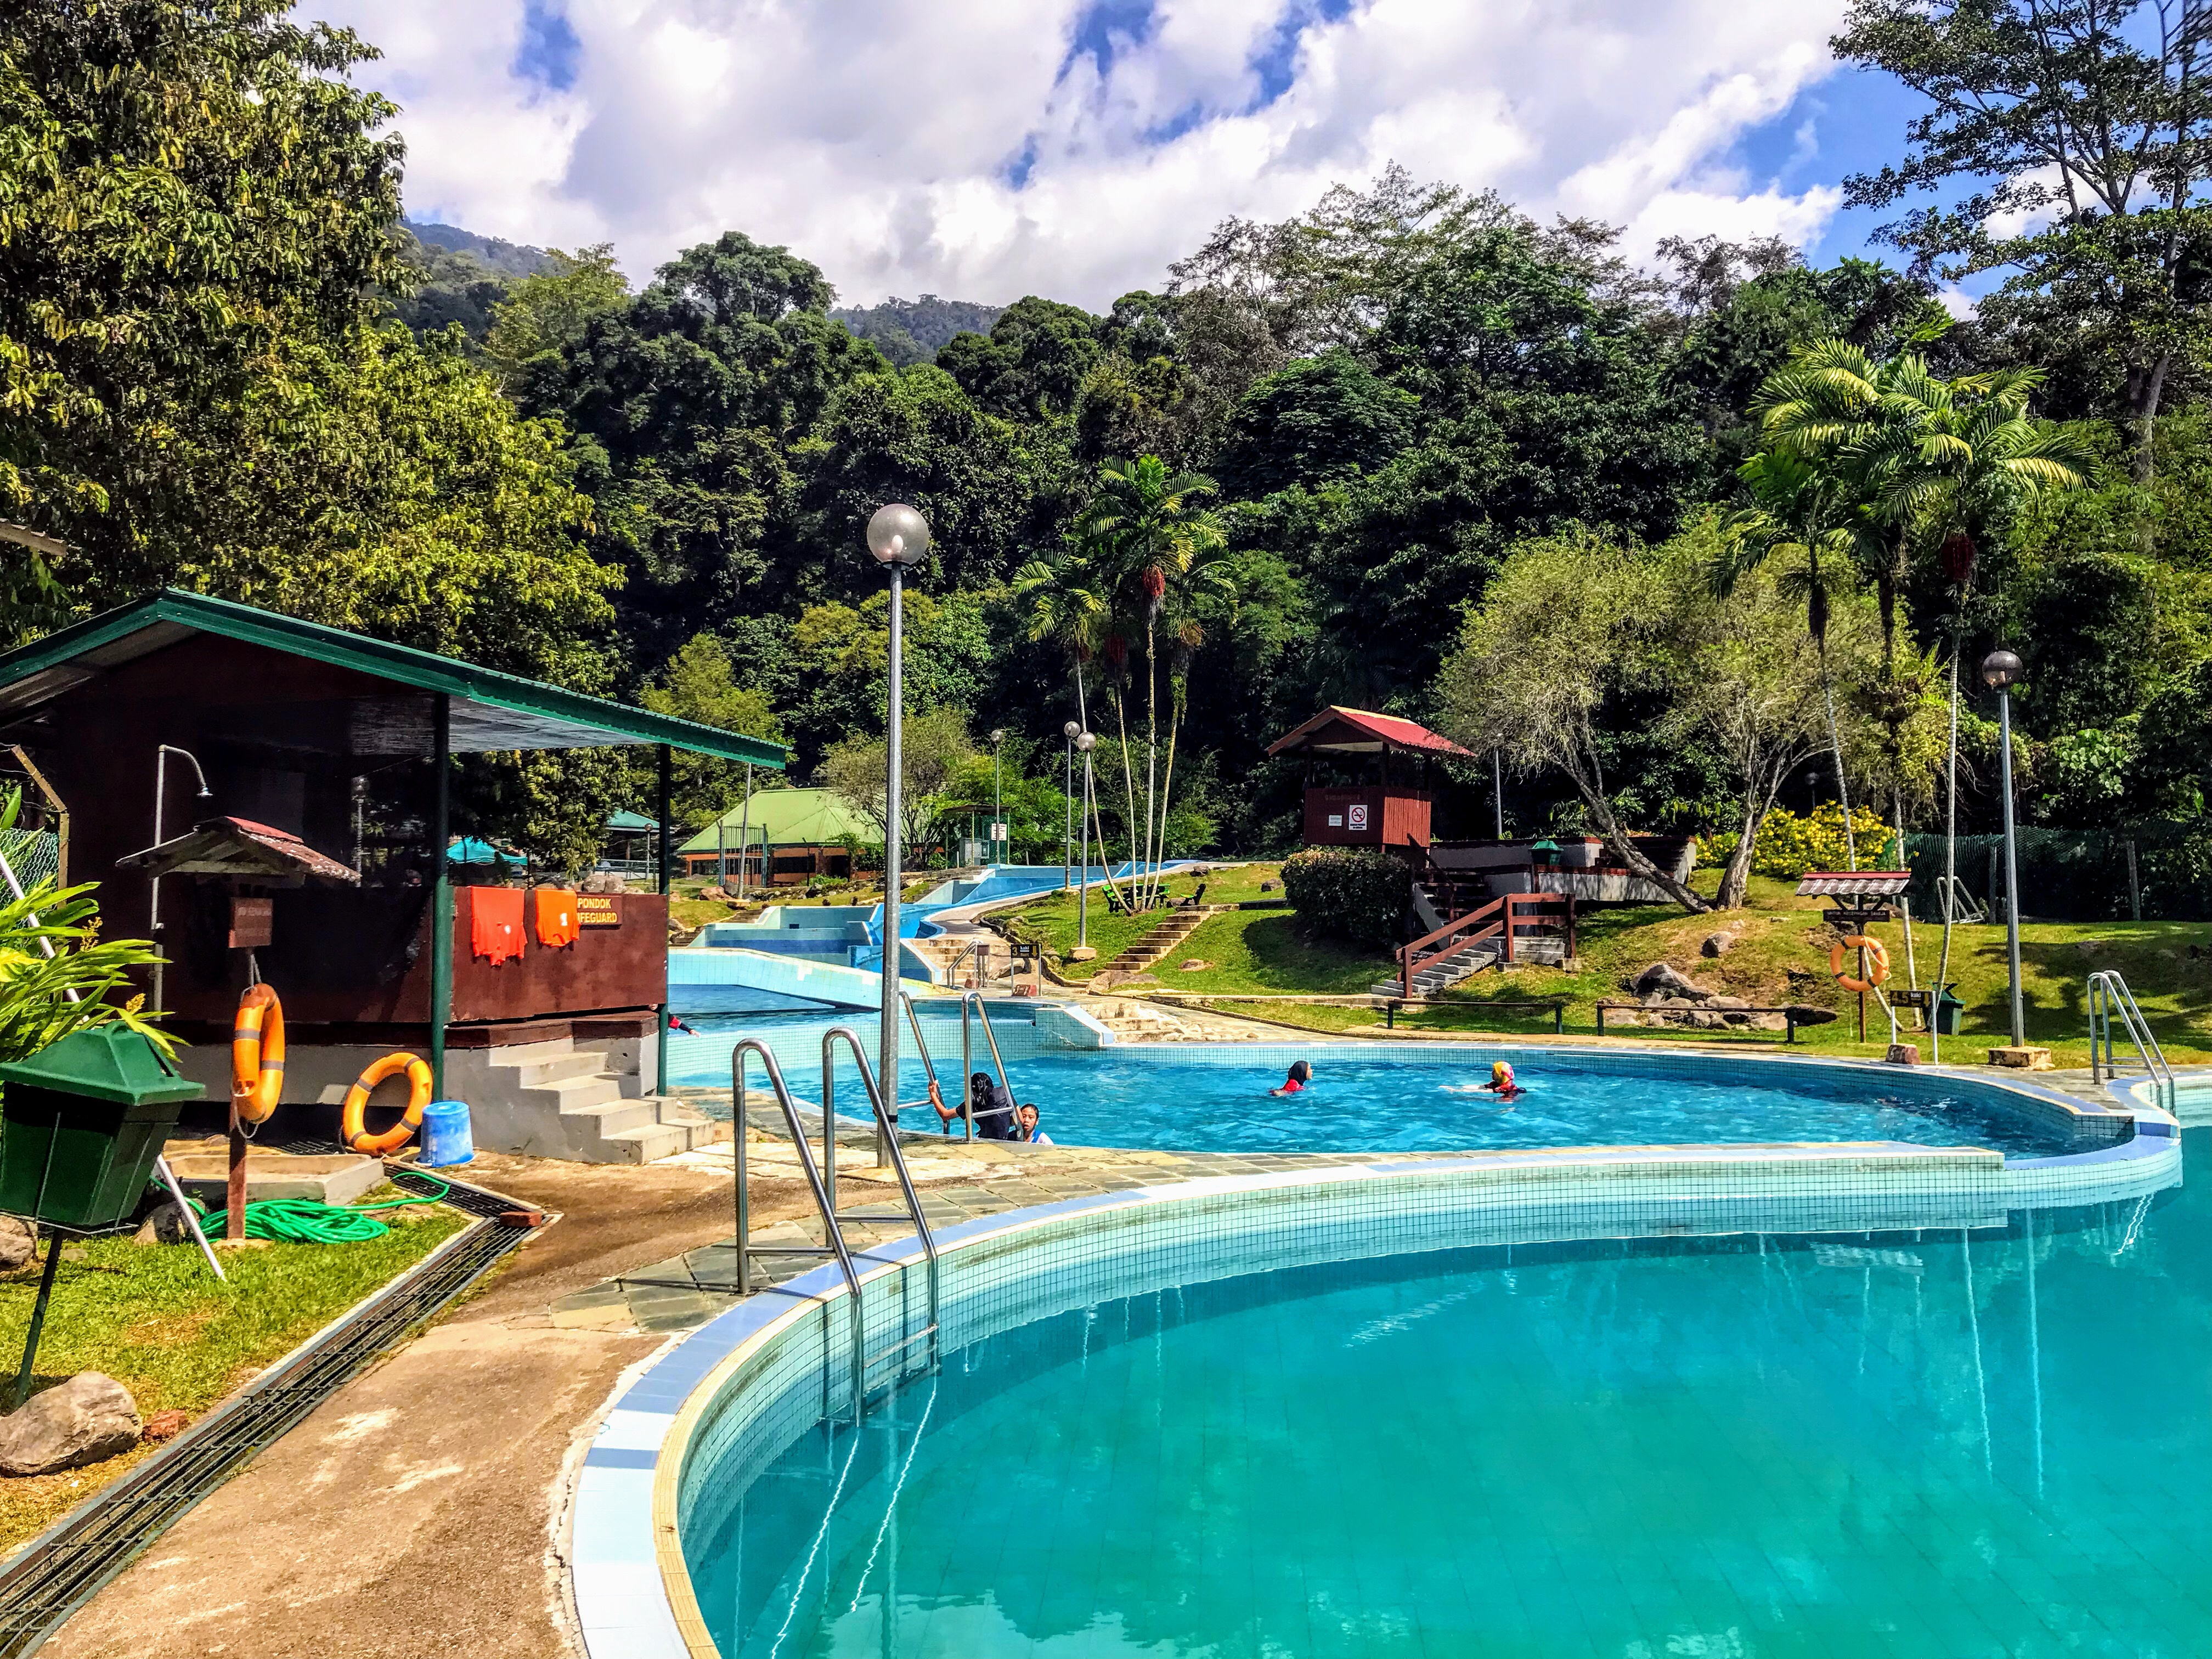 How to visit Poring Hot Springs and trails in Borneo without a tour